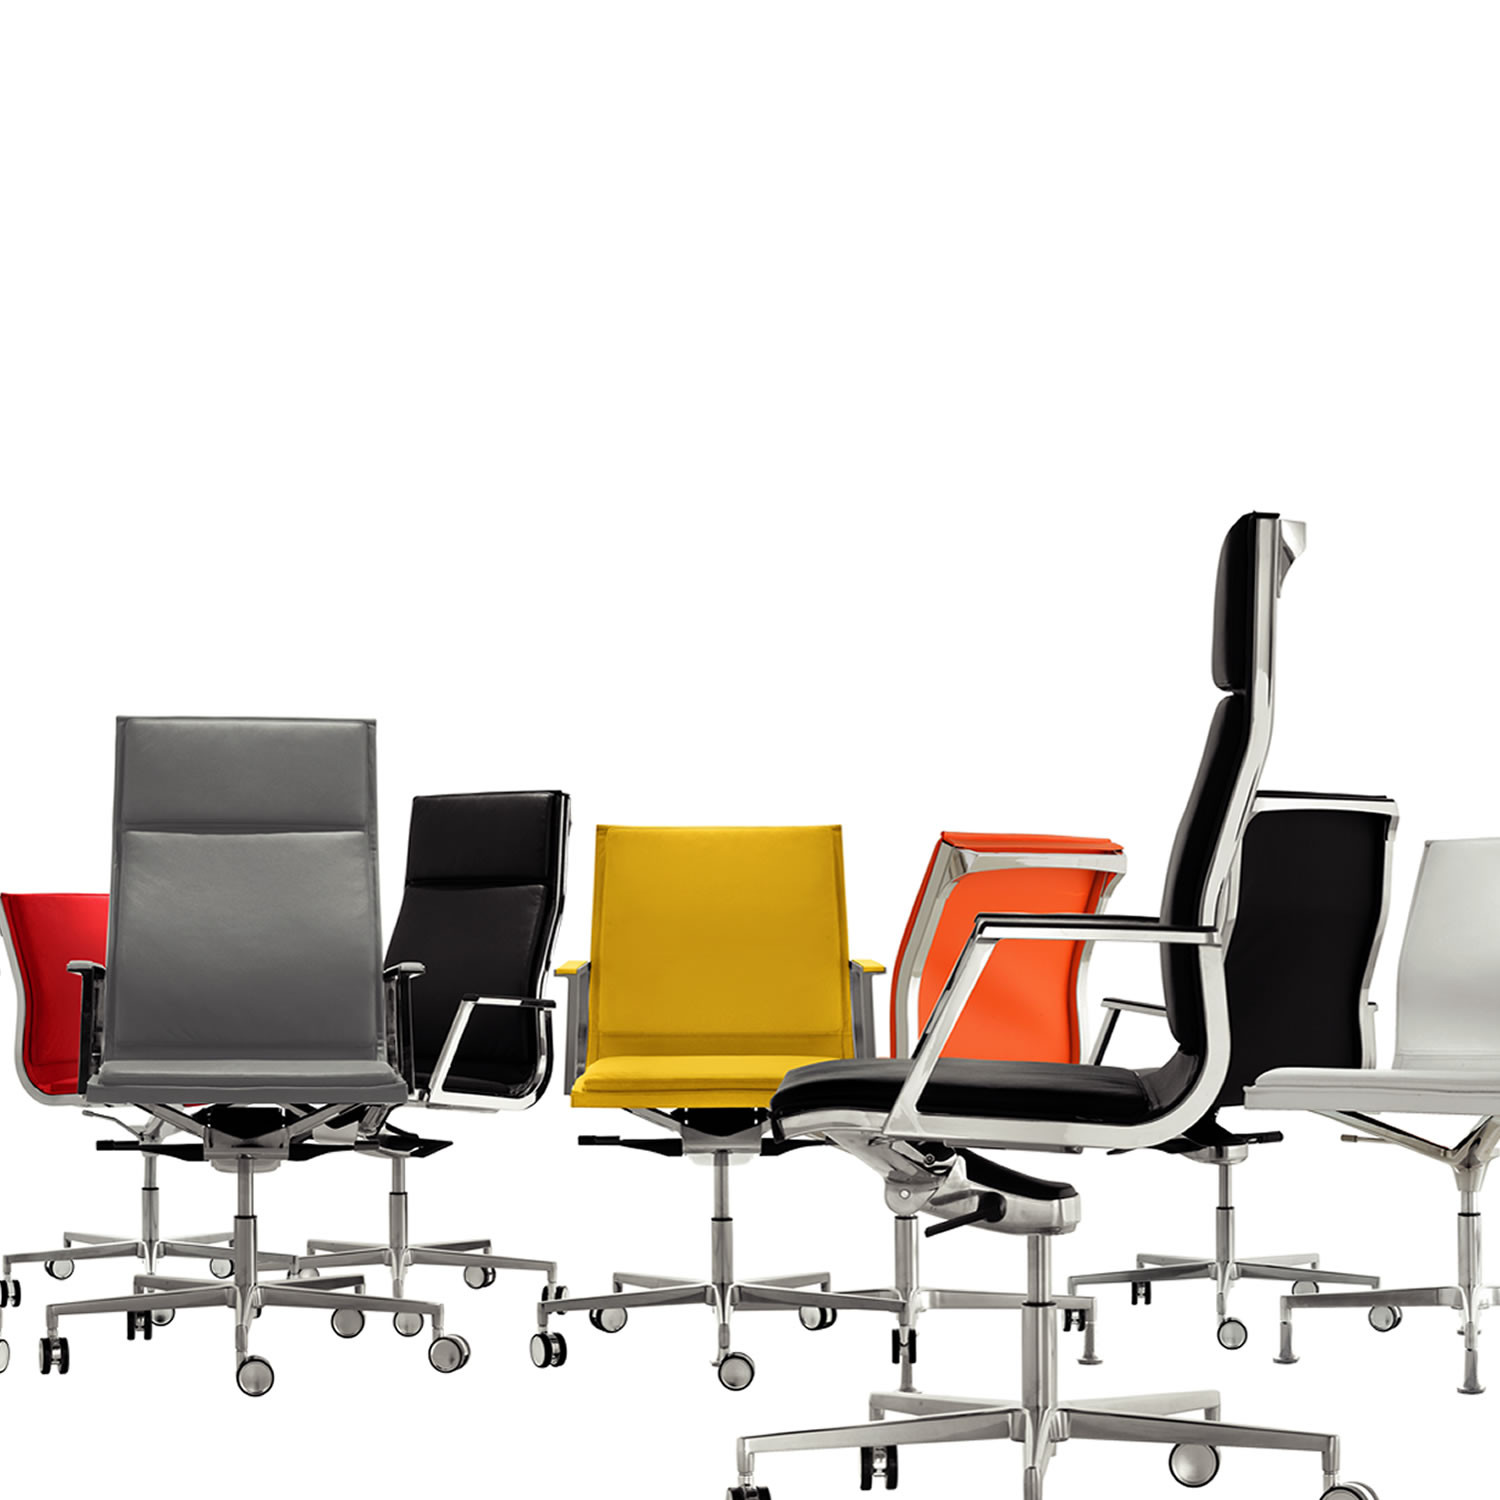 Nulite Executive Office Chairs by Luxy